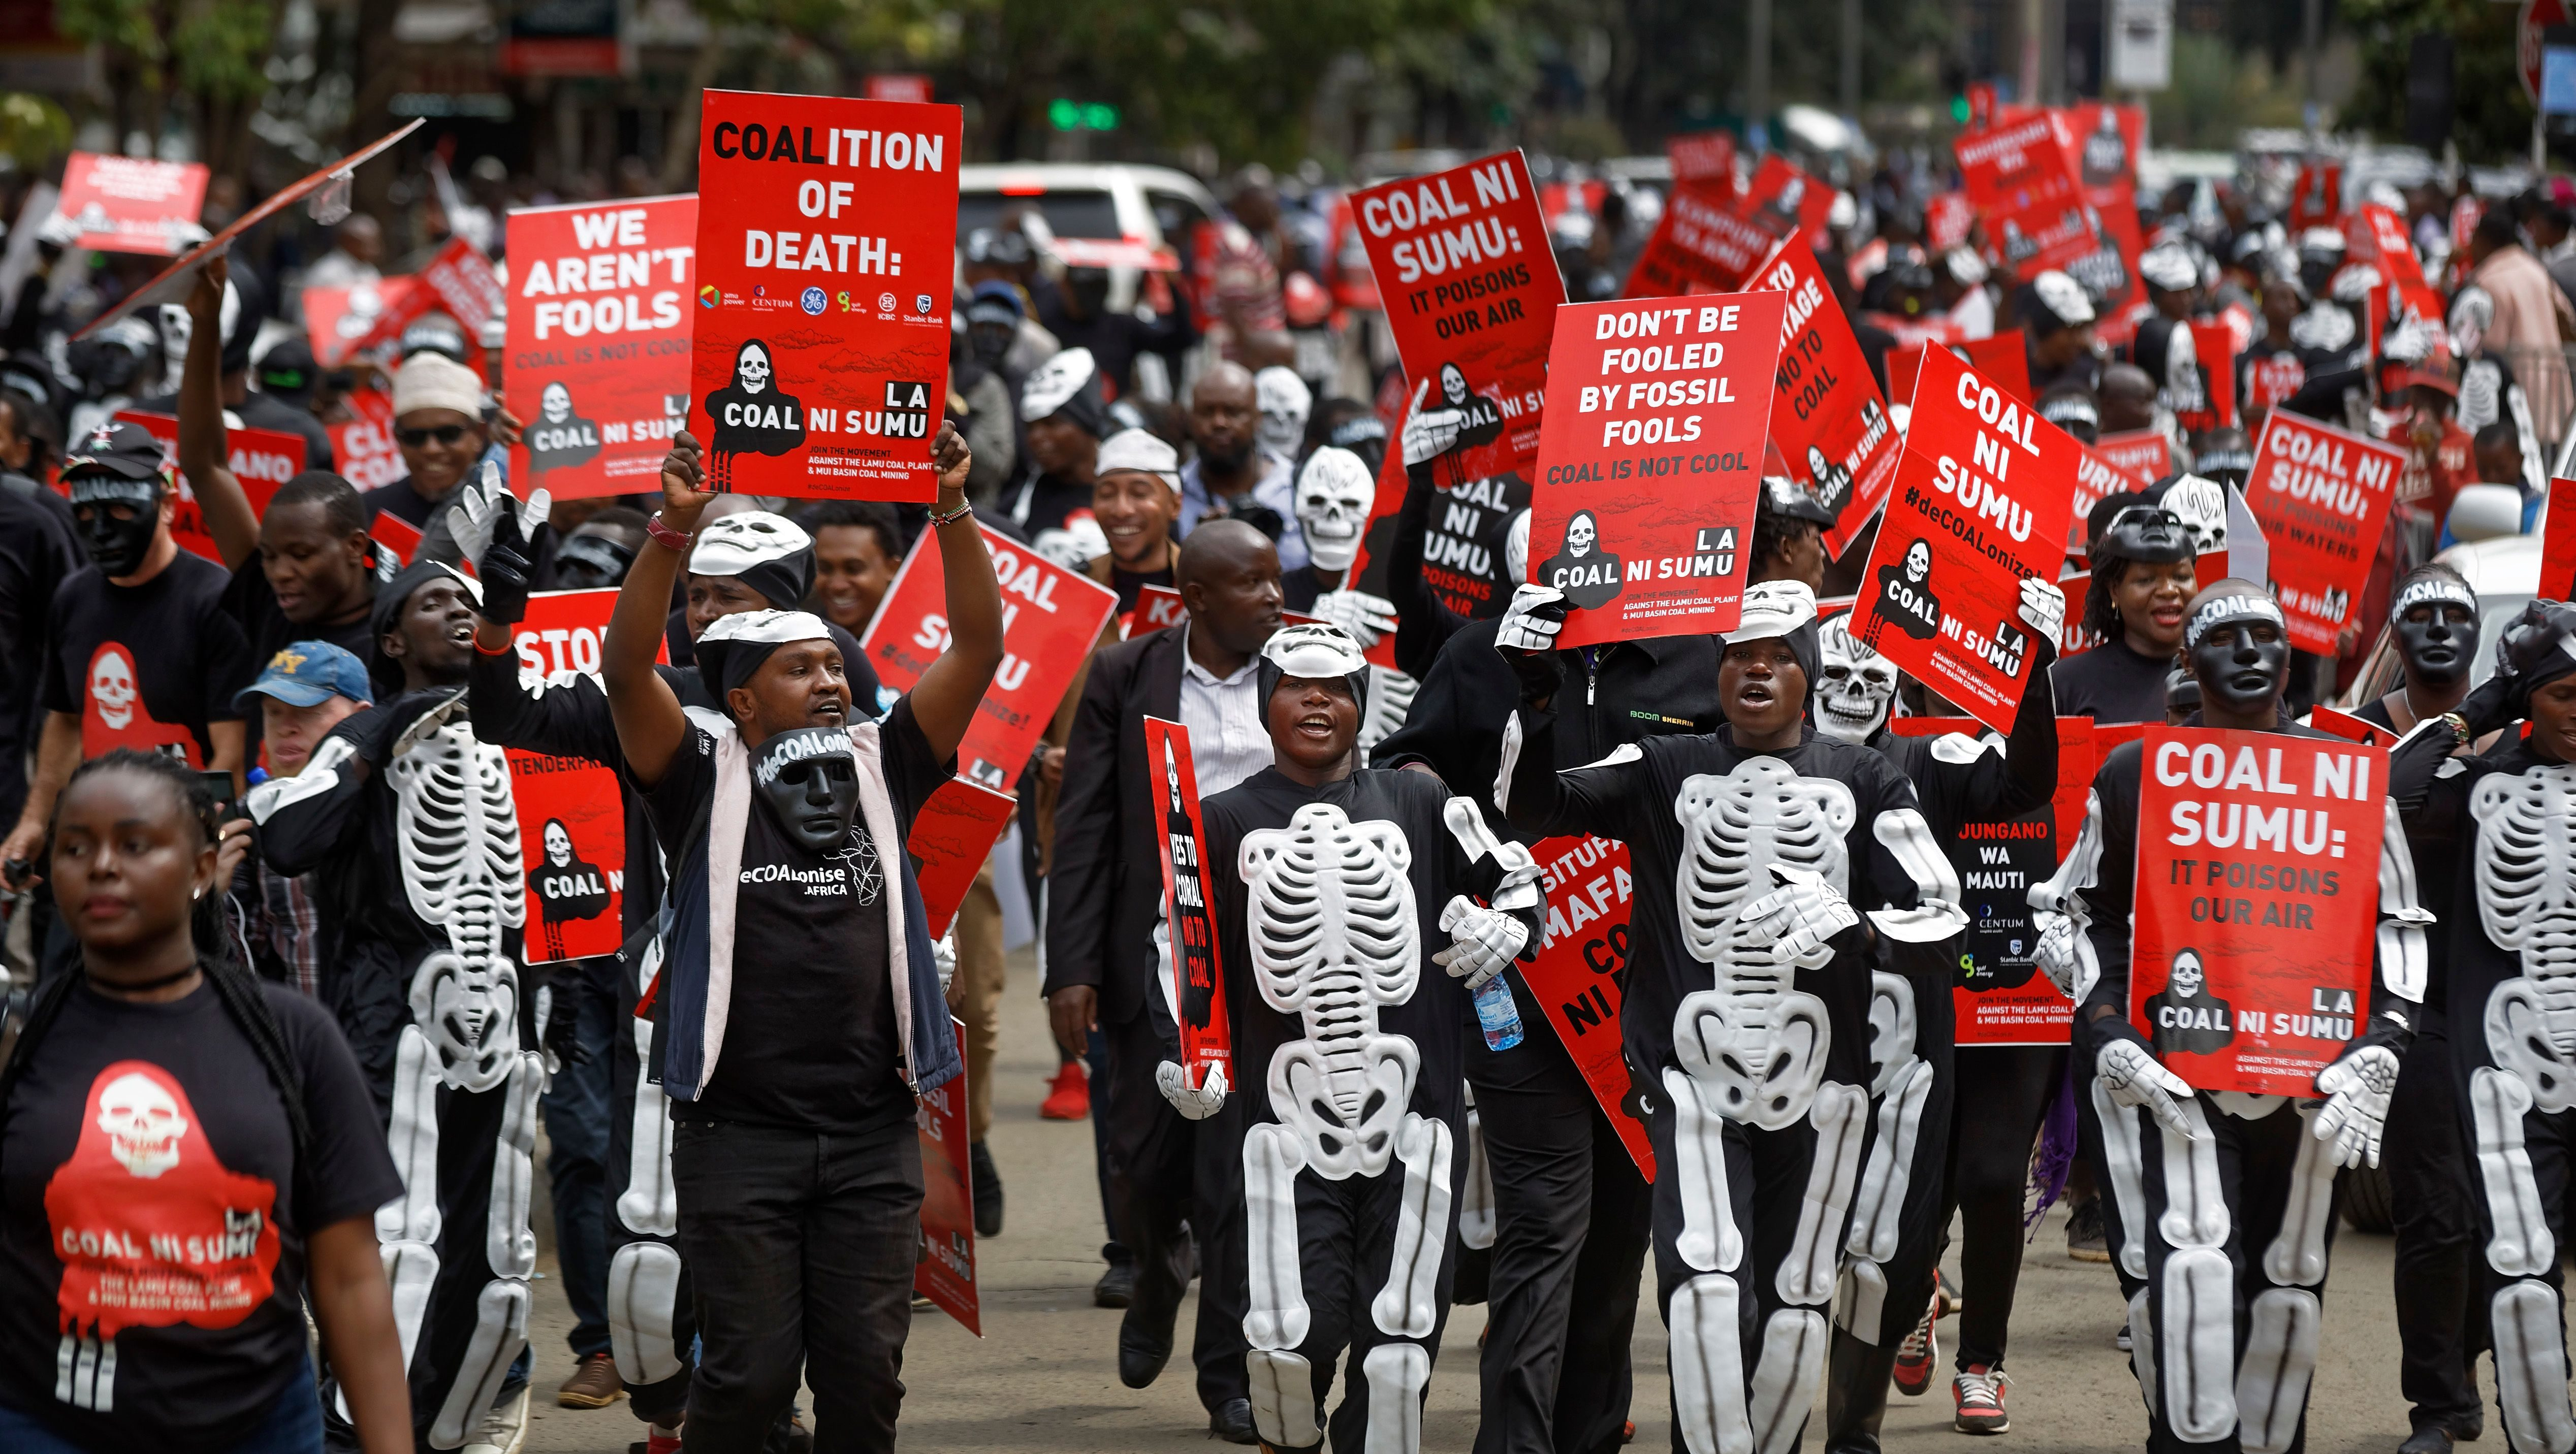 Environmental protesters demonstrate against recent government plans to mine coal and open a coal-fired power plant, in downtown Nairobi, Kenya Tuesday, June 5, 2018. Kenyan activists protested plans for the joint venture between the Kenyan and Chinese governments in Lamu County, saying it will have devastating effect on the environment and health of local populations.